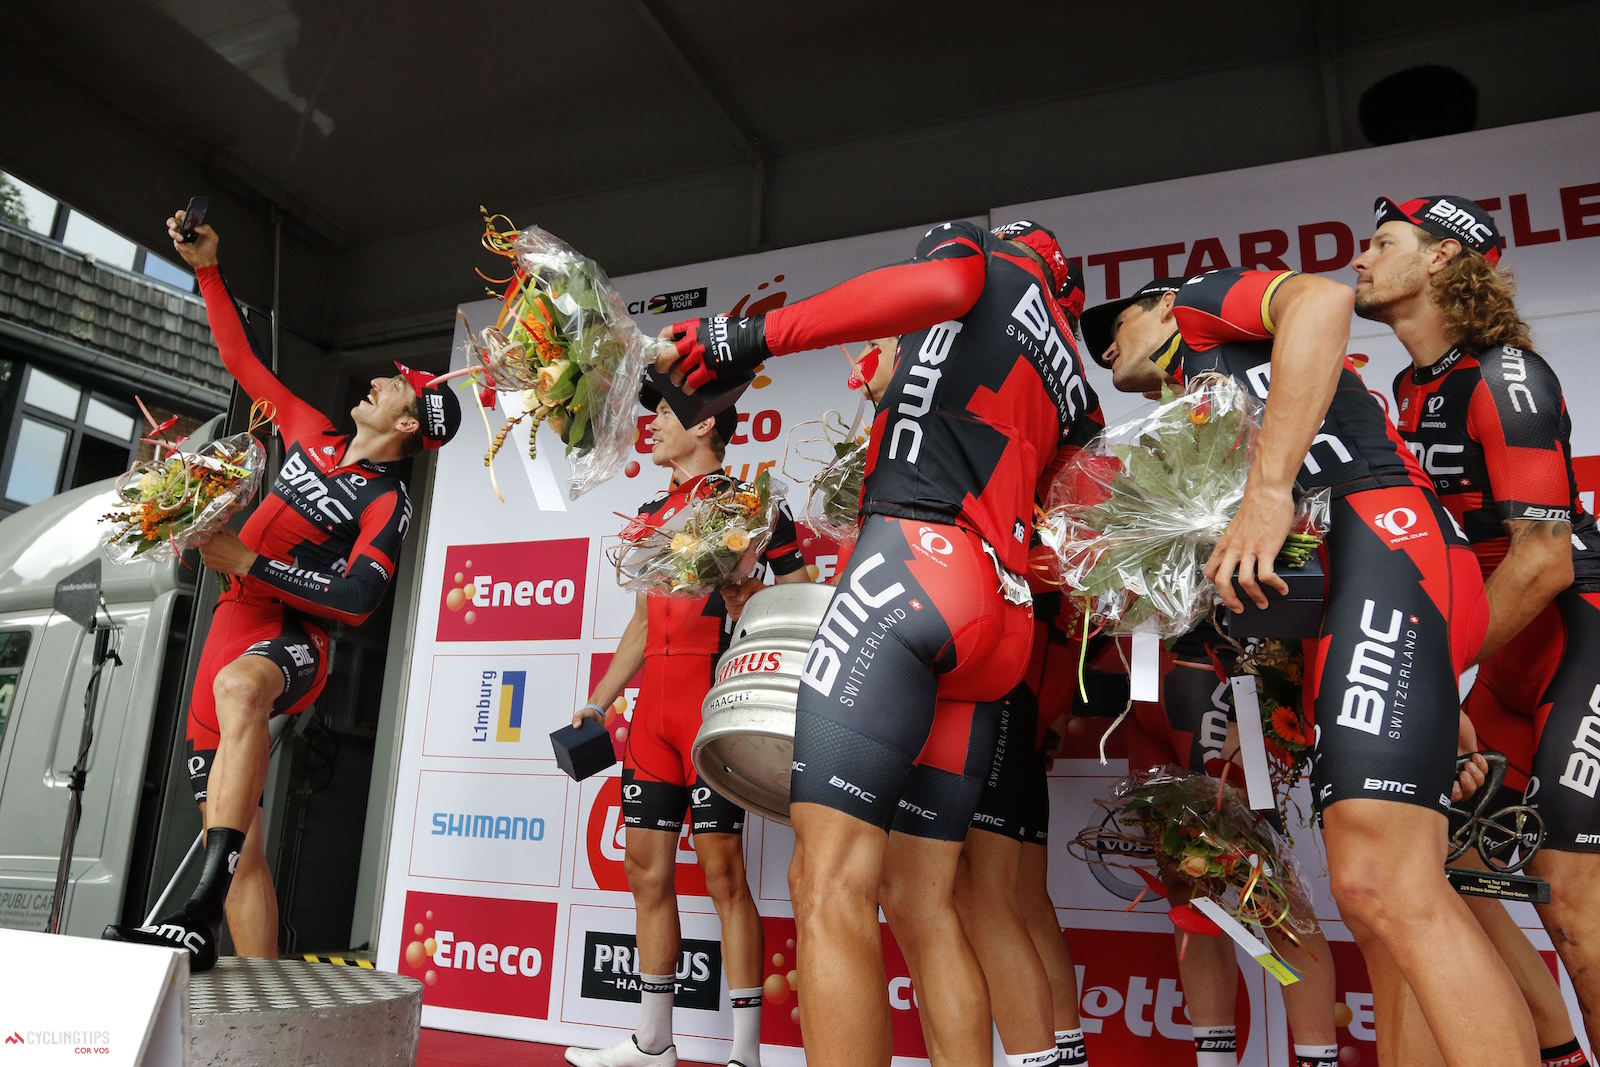 Taylor Phinney (BMC Racing) took a selfie with his BMC Racing teammates after winning the Stage 5 team time trial at the 2016 Eneco Tour. Photo Davy Rietbergen/Miwa iijima//Cor Vos.